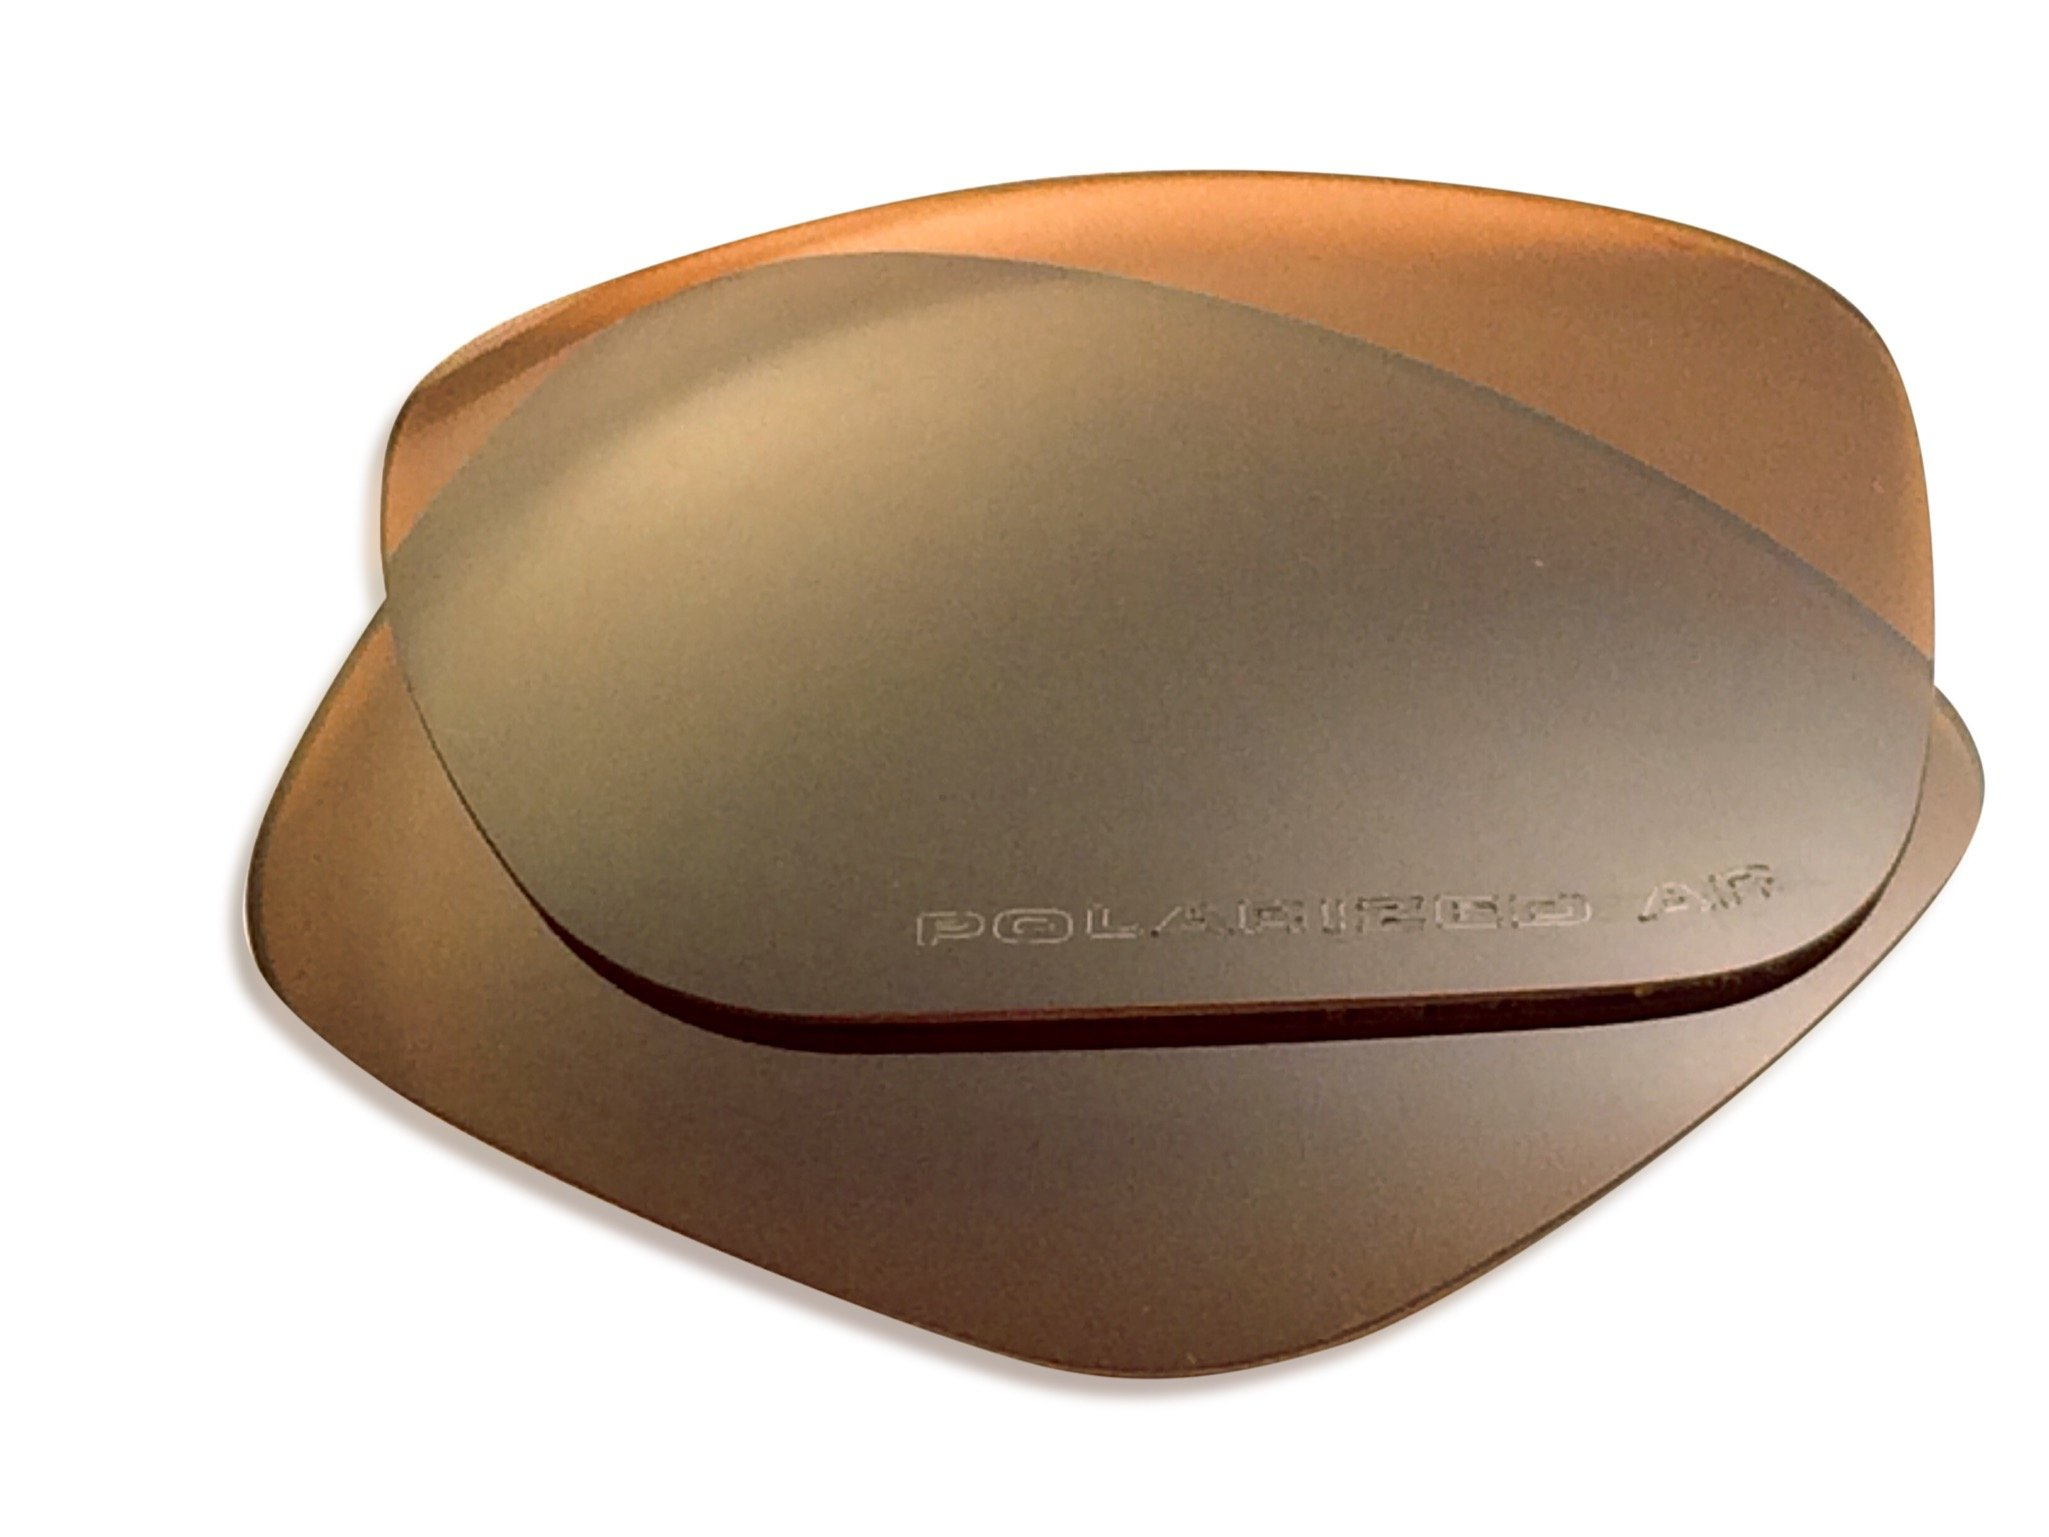 Lens Swap BROWN Oakley Holbrook Lenses POLARIZED by QUALITY & FITS PERFECTLY.